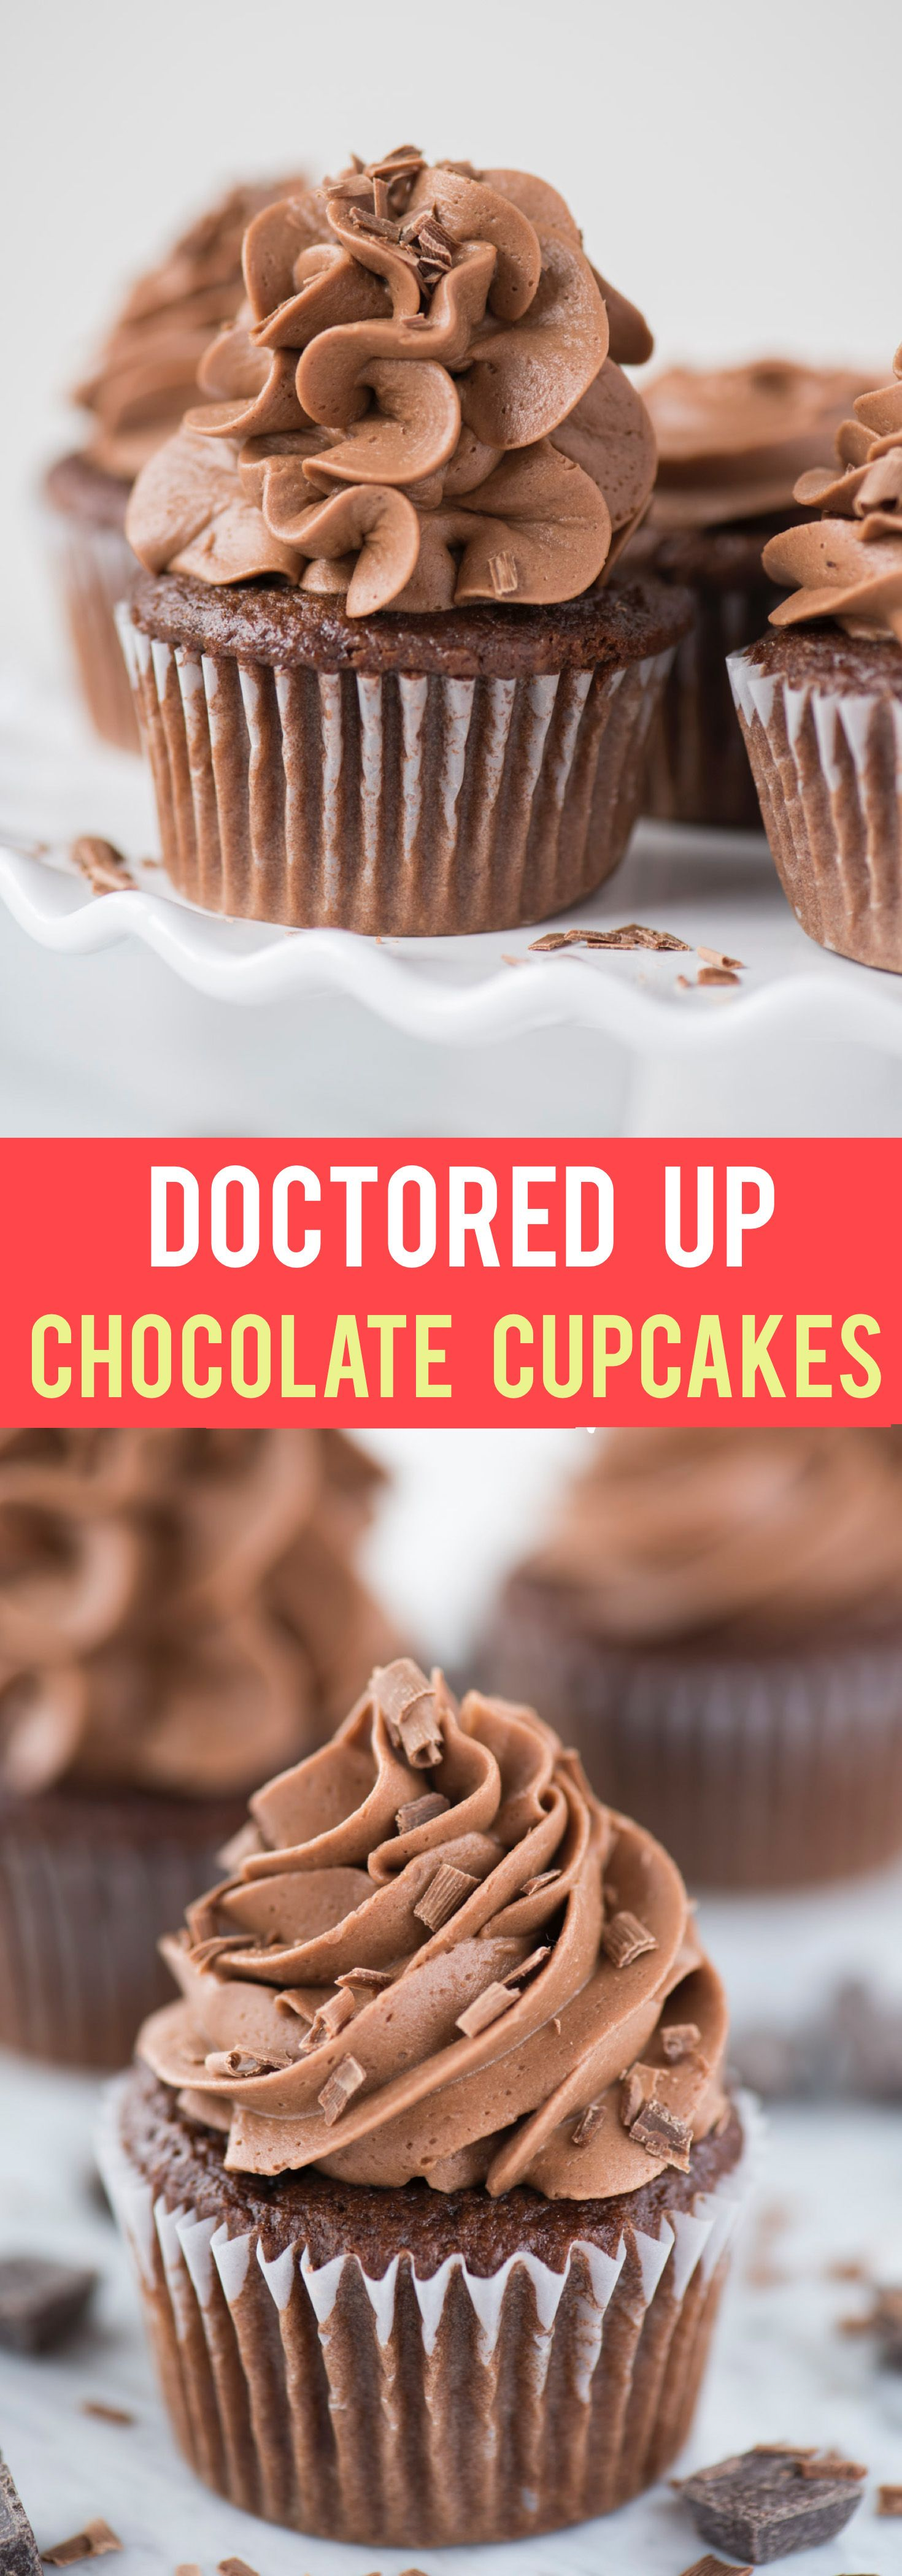 cakes and cupcakes recipes